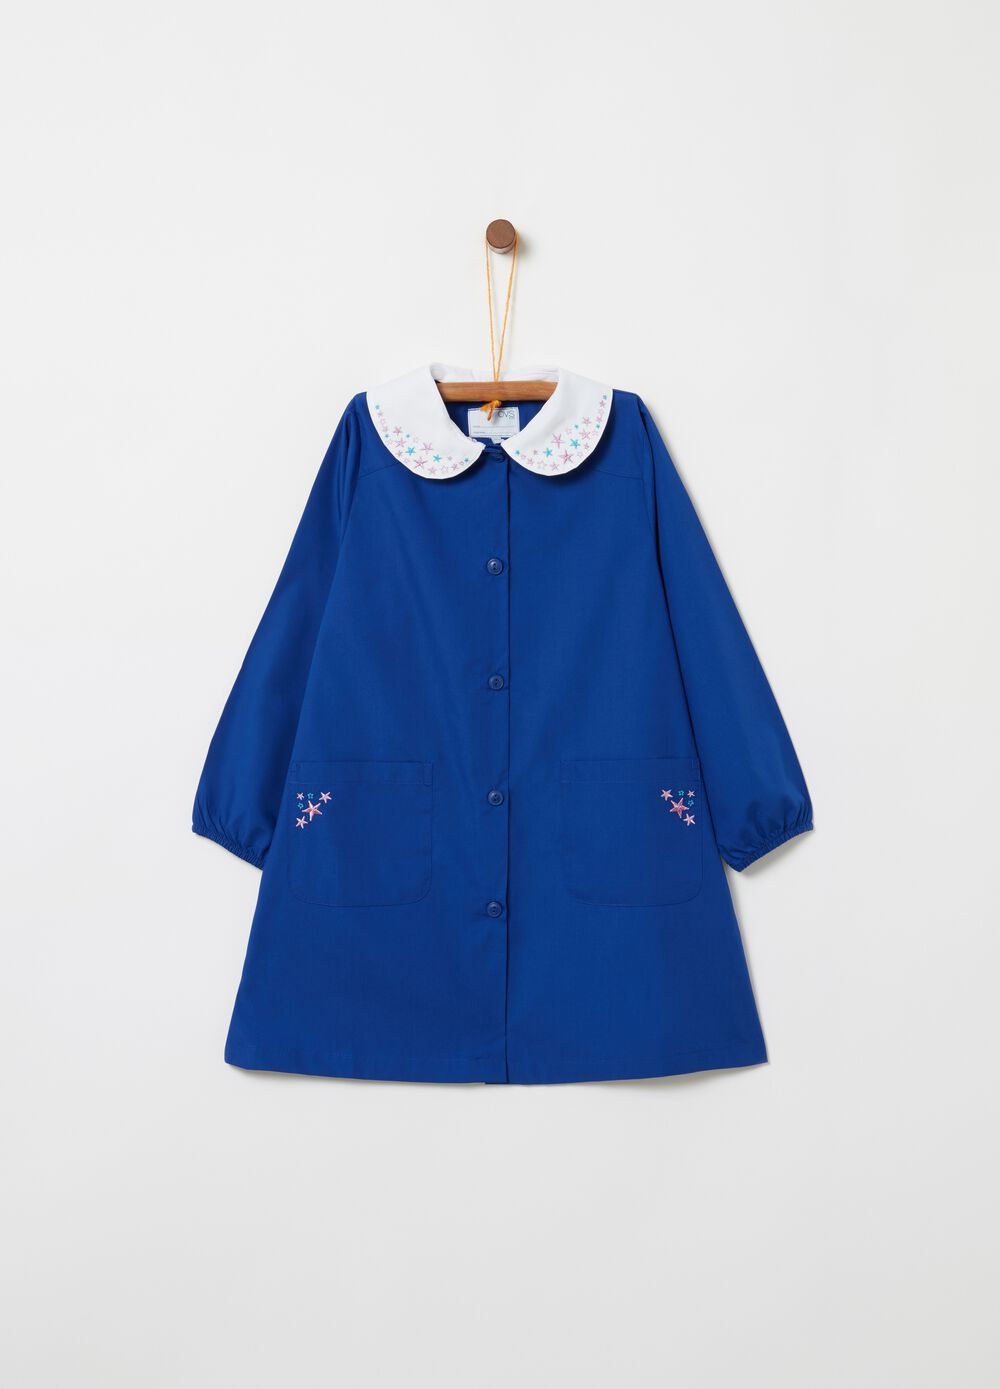 School smock with rounded collar embroidery and pockets